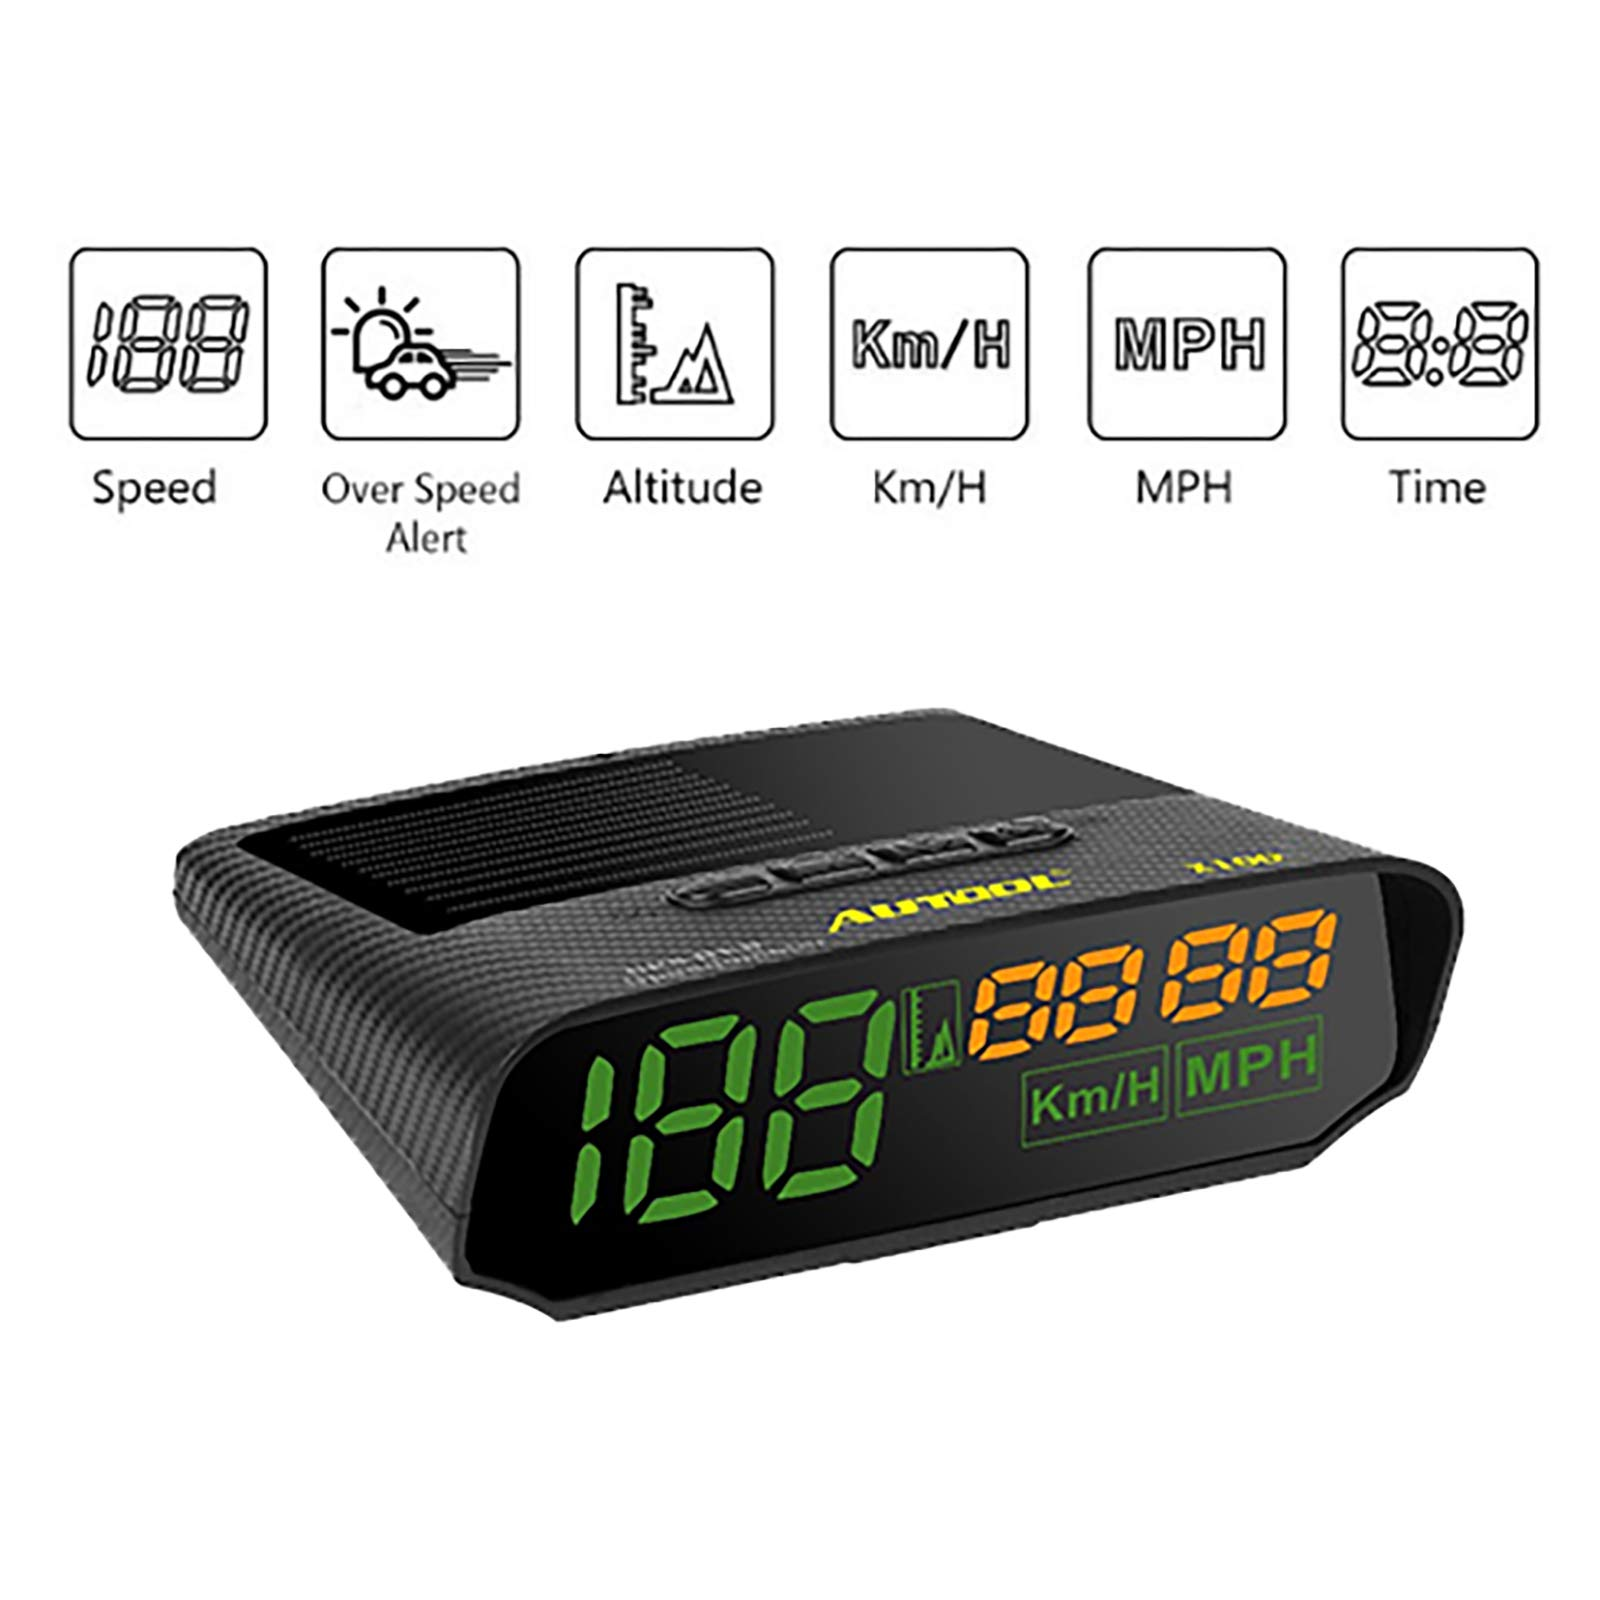 AUTOOL Universal Car HUD GPS Speedometer MPH/KM/h LED Head UP Display Digital Auto Speed Overspeed Alarm for All Vehicles by AUTOOL